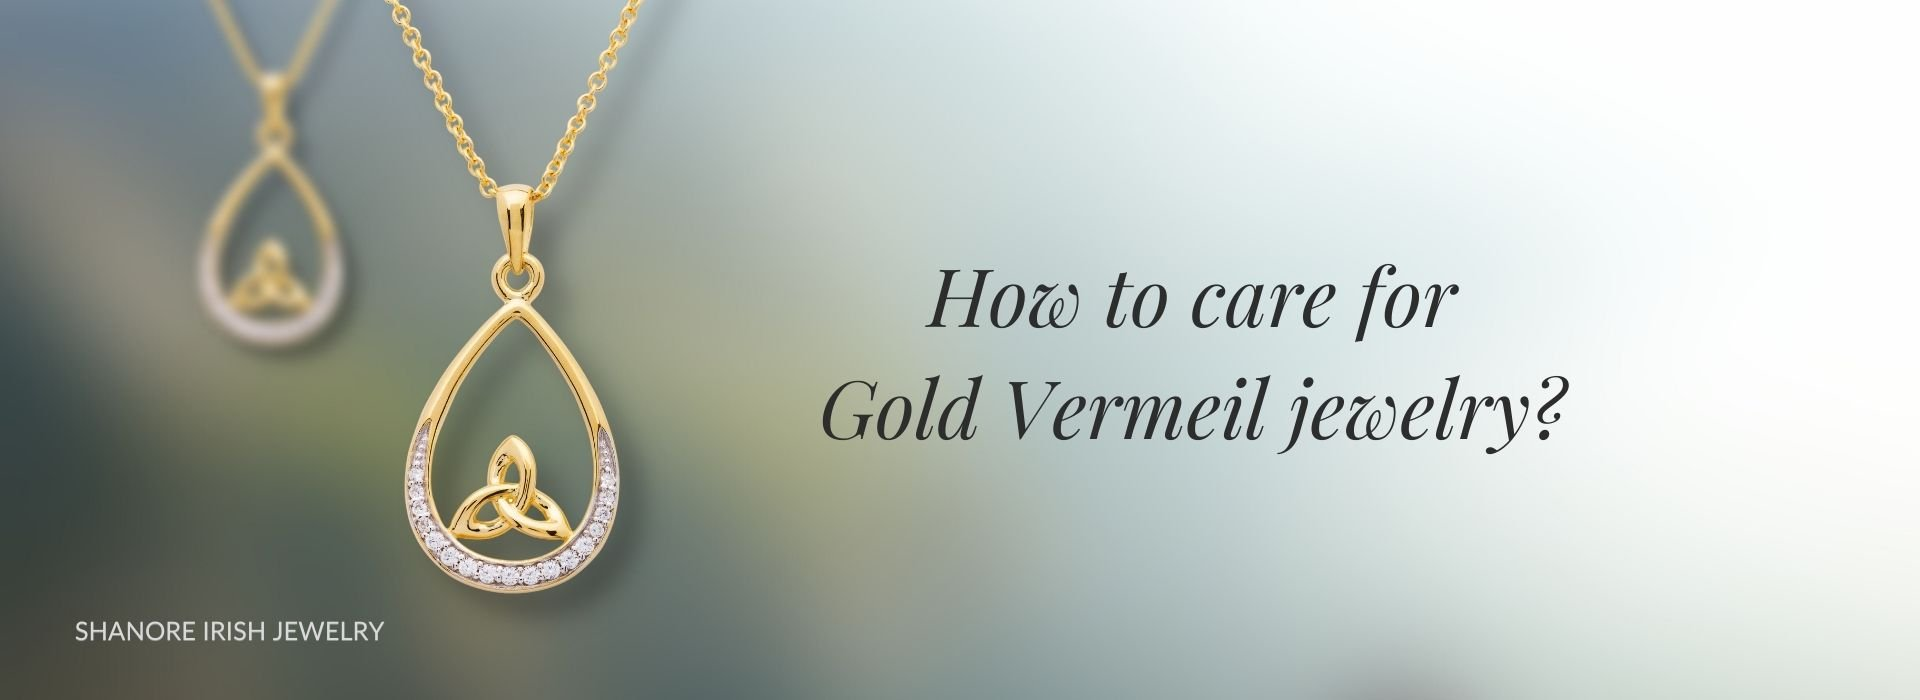 How to Care for Gold Vermeil - ShanOre Irish Jewelry